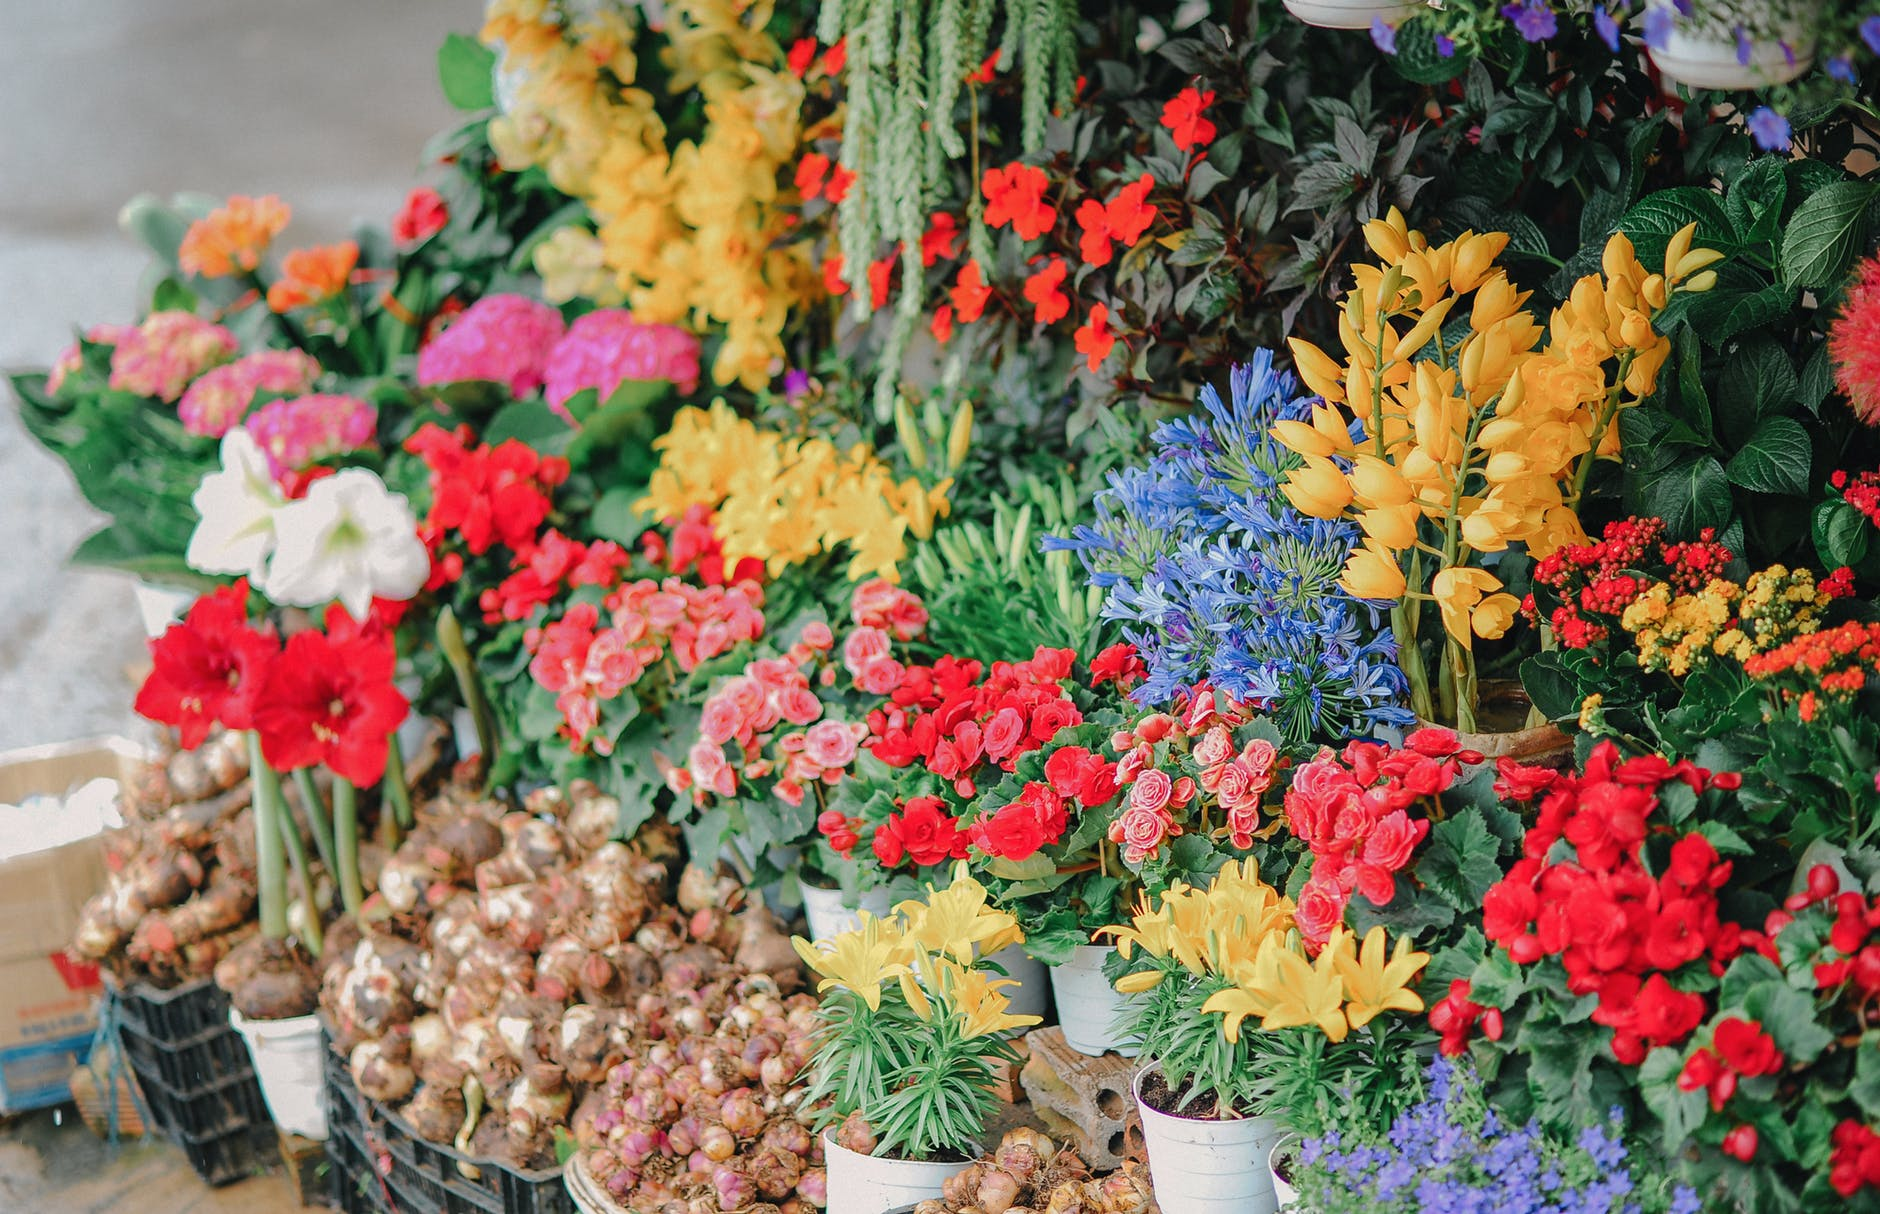 assorted flowers on crates